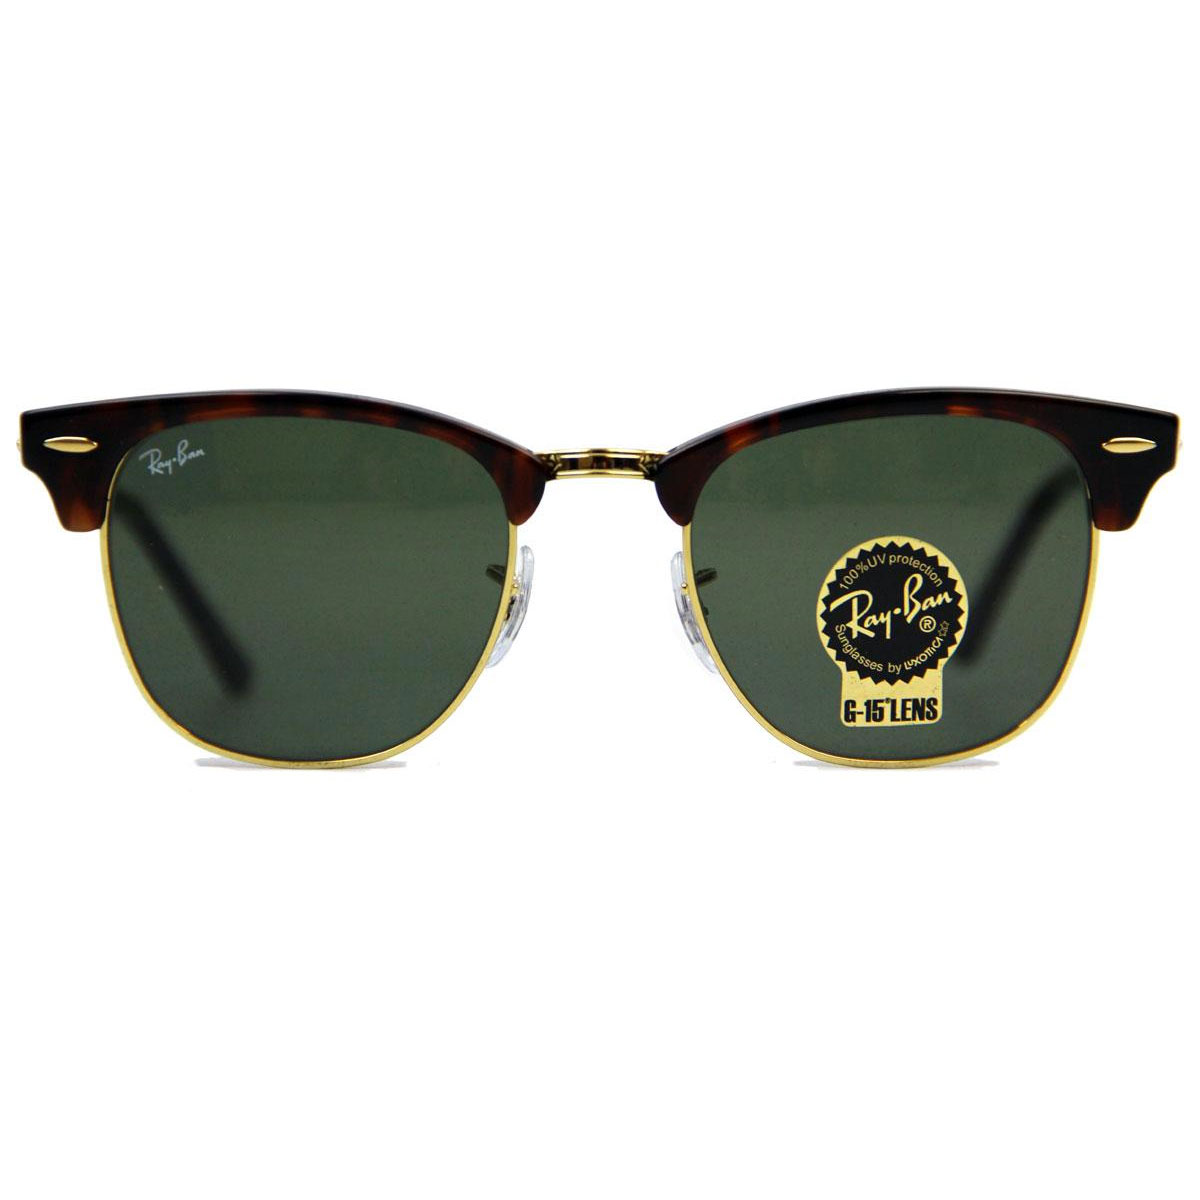 Ray-Ban Icons: Clubmaster Sunglasses